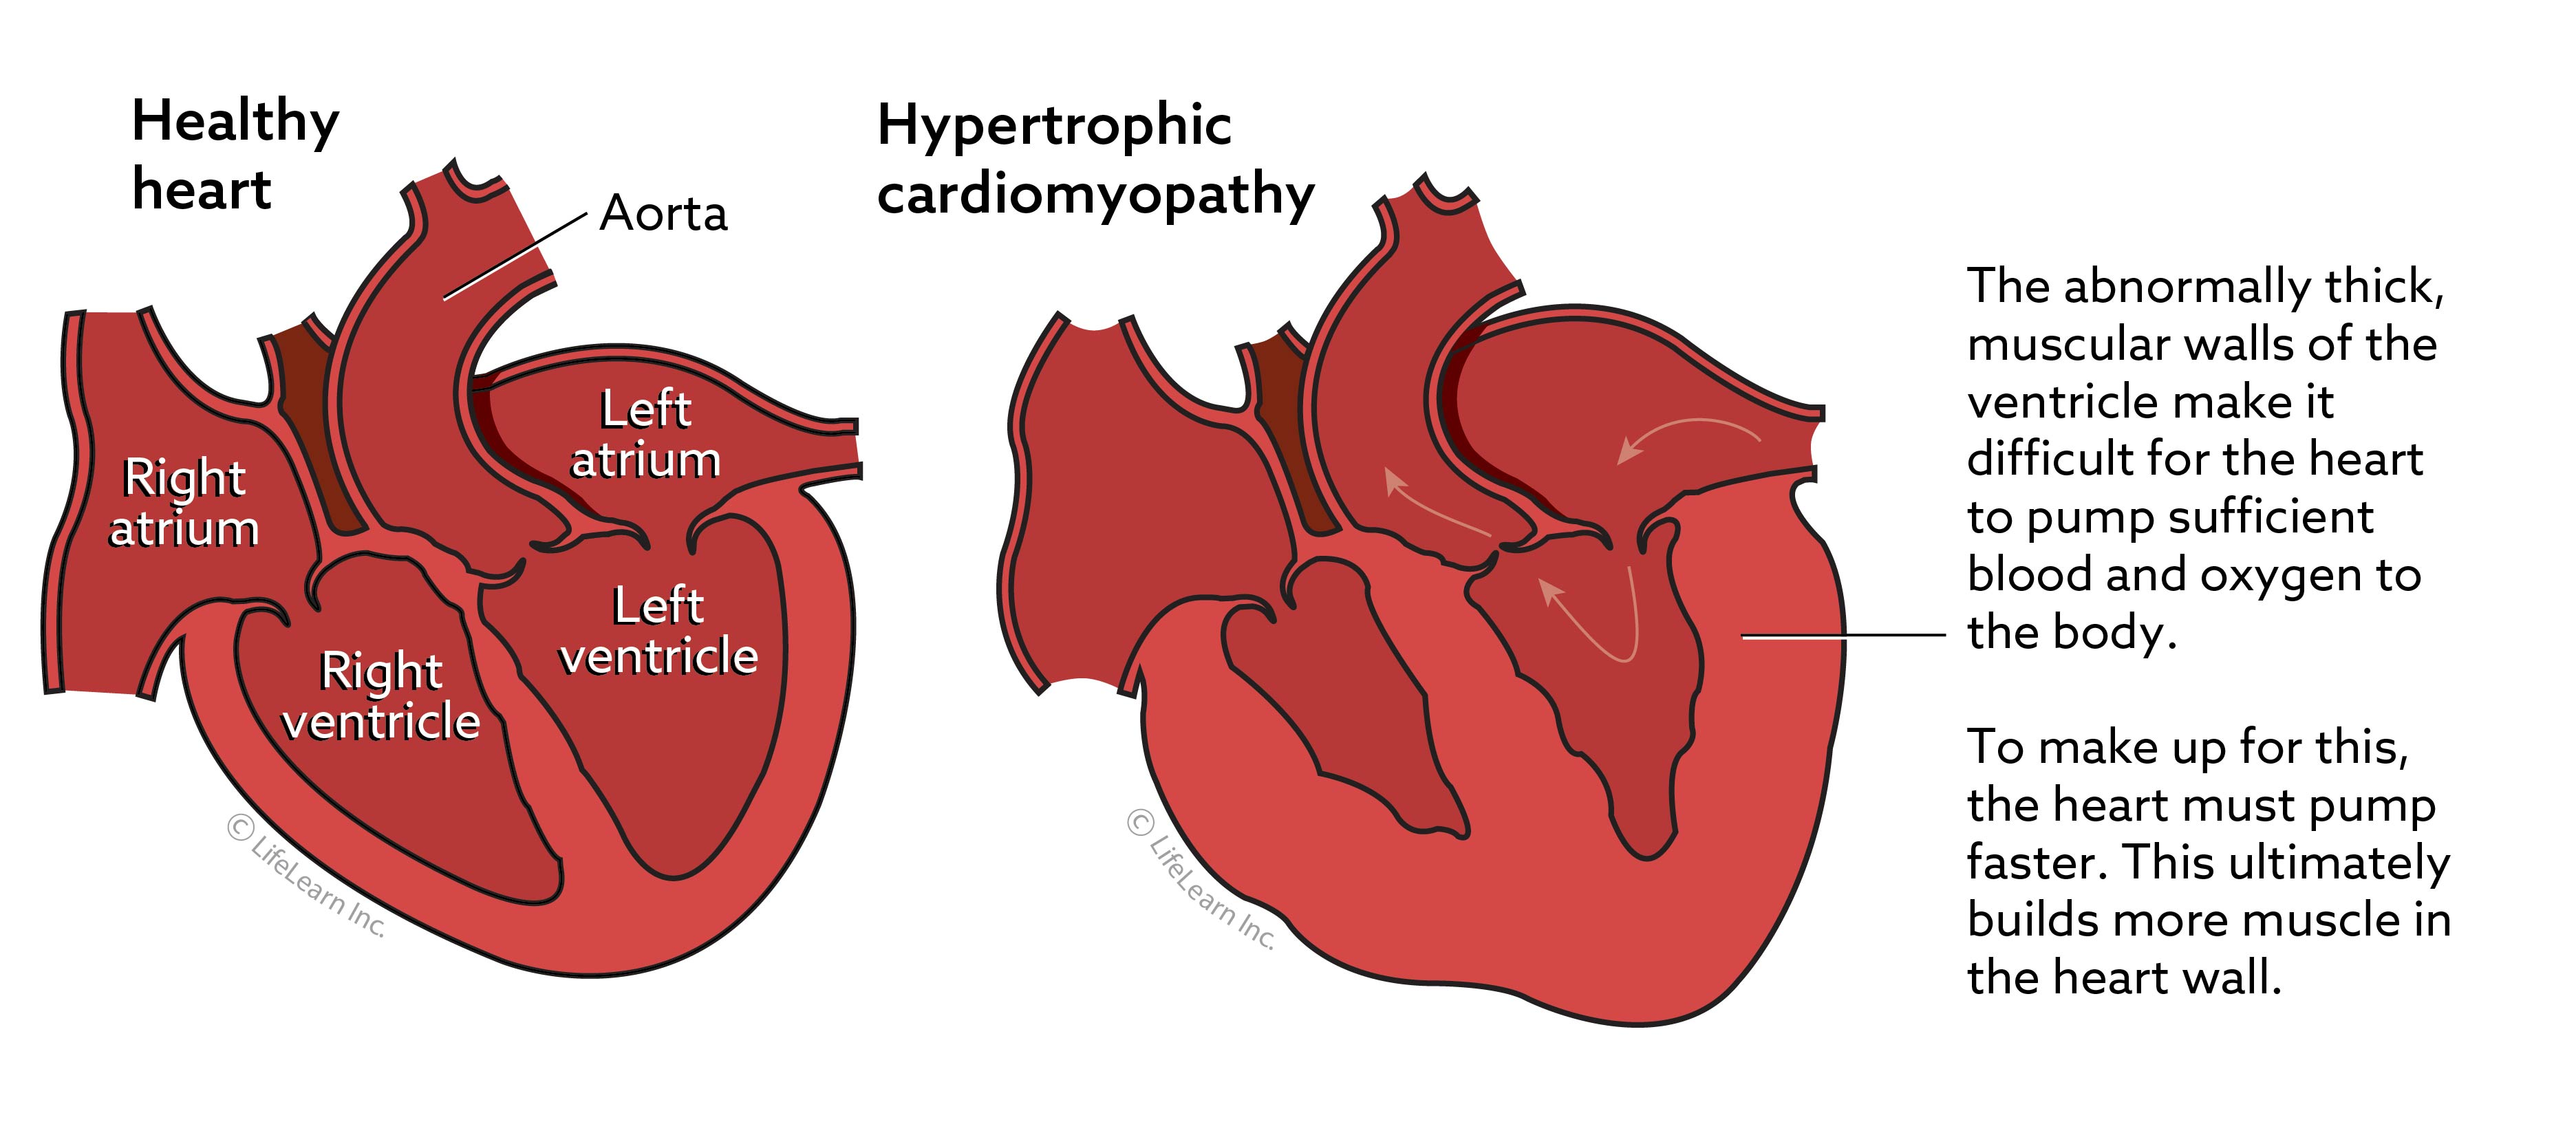 heart_disease_healthy_hypertrophic_cardiomyo_updated2017-01